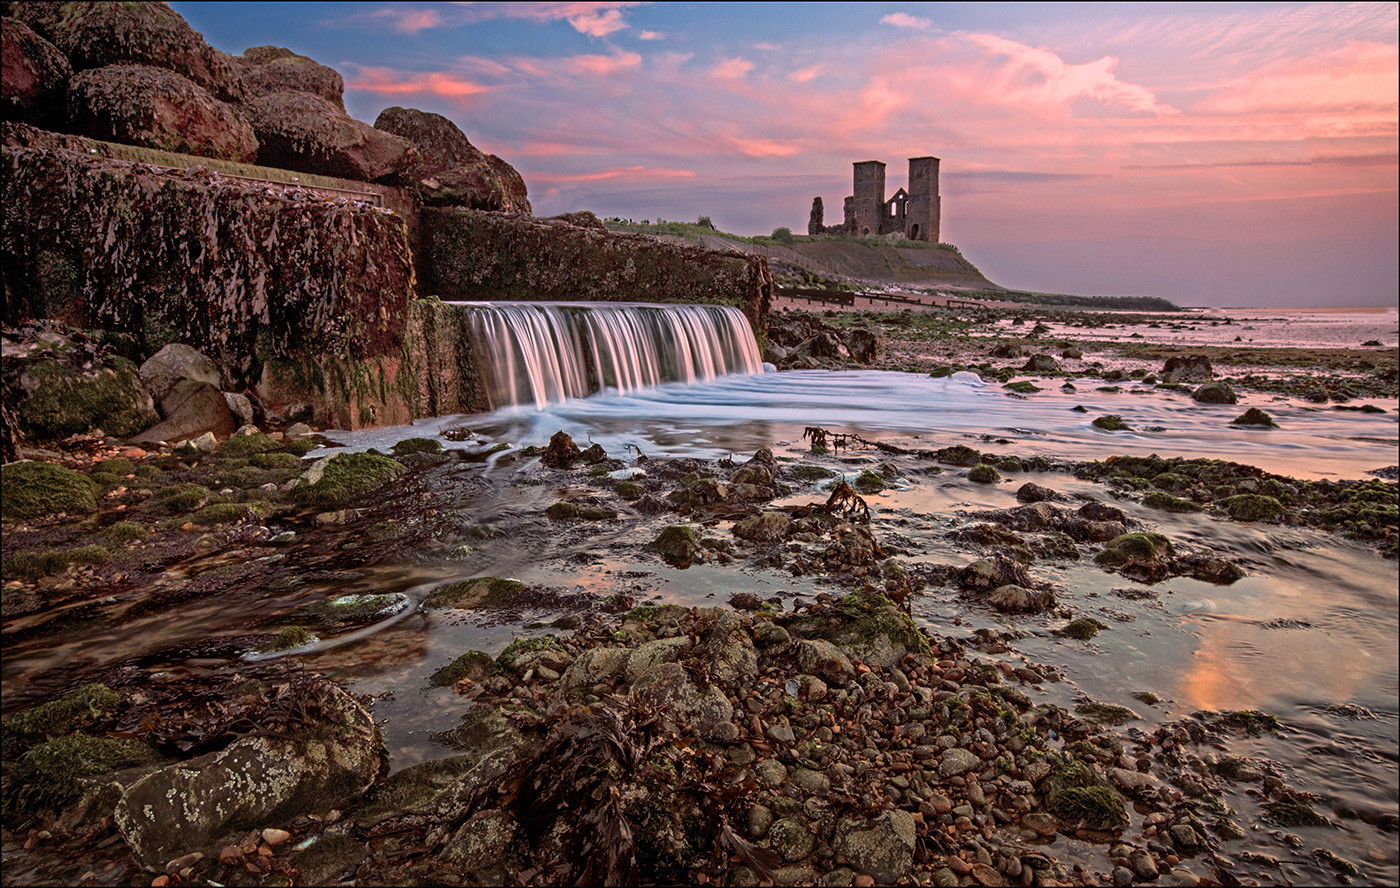 19 GOING DOWN OF THE SUN AT RECULVER by Graham Bunyan